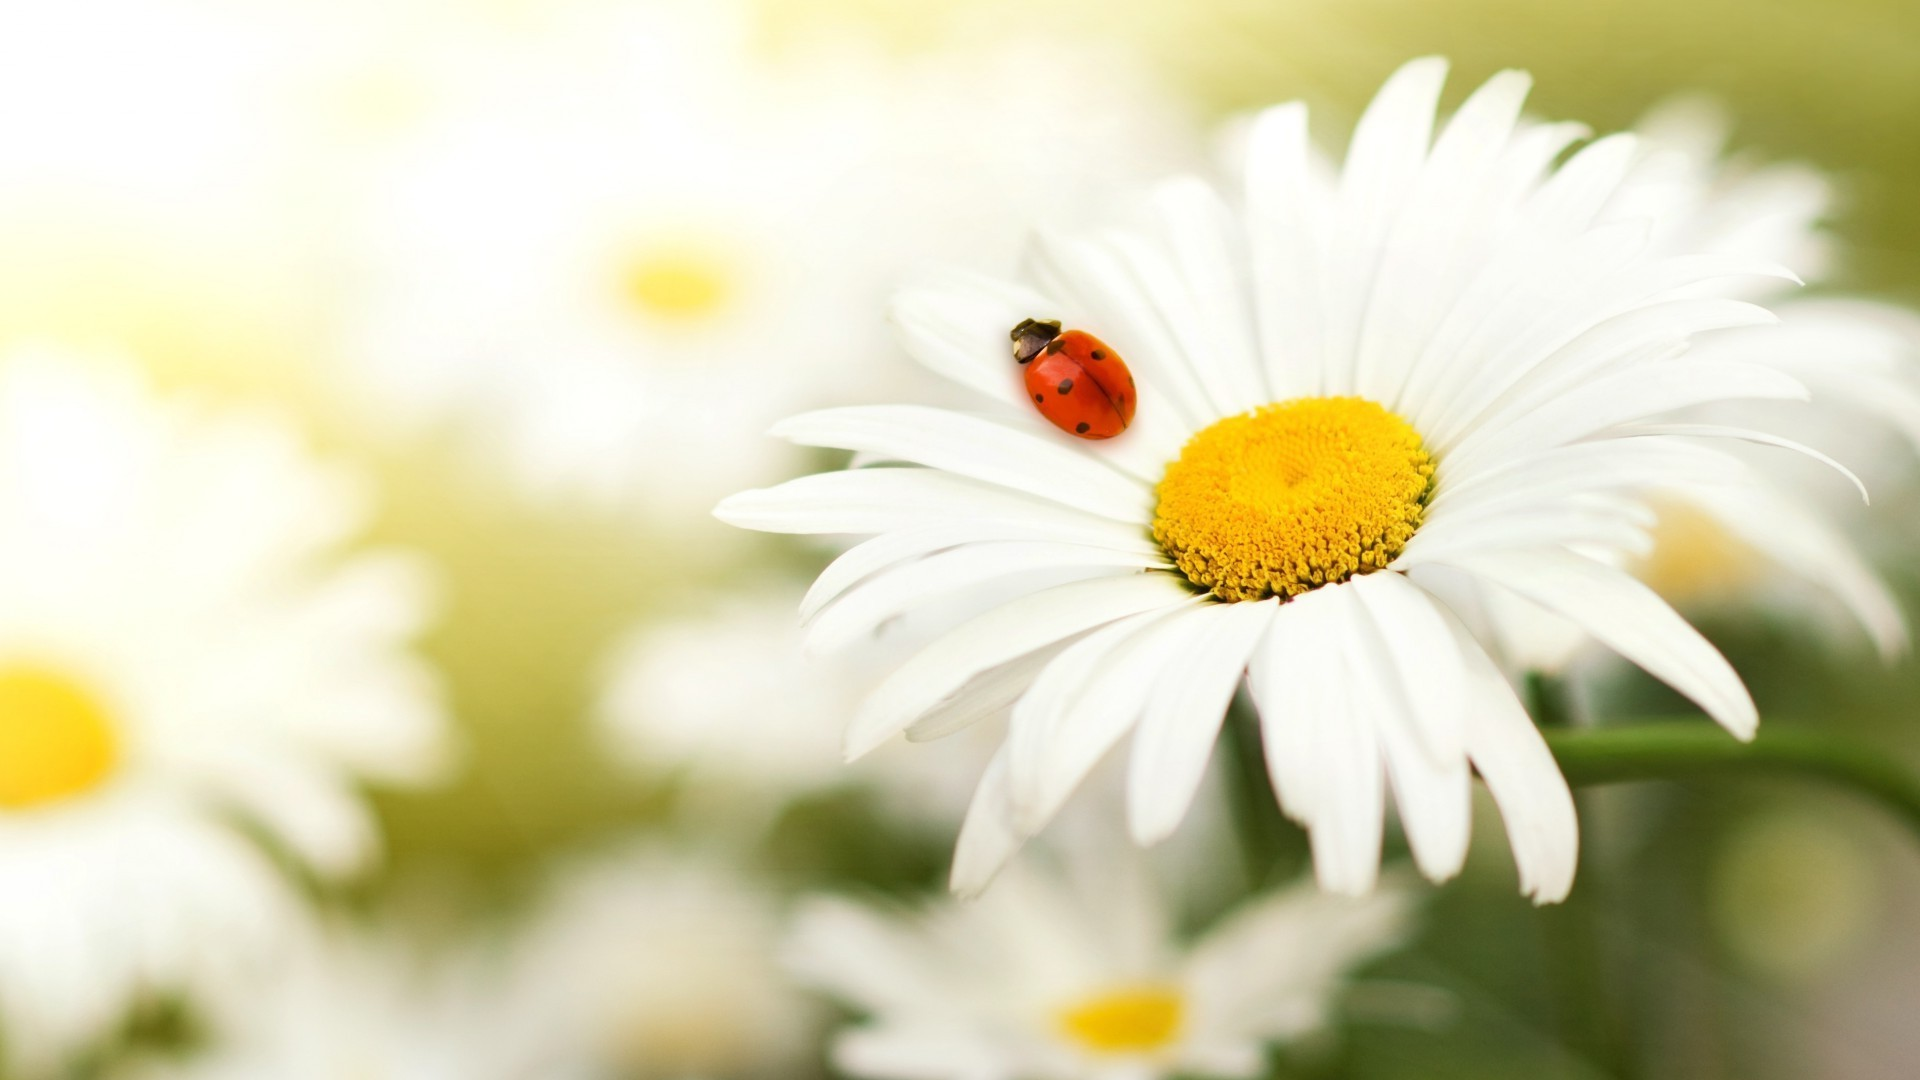 ladybug on daisy. iphone wallpapers for free.